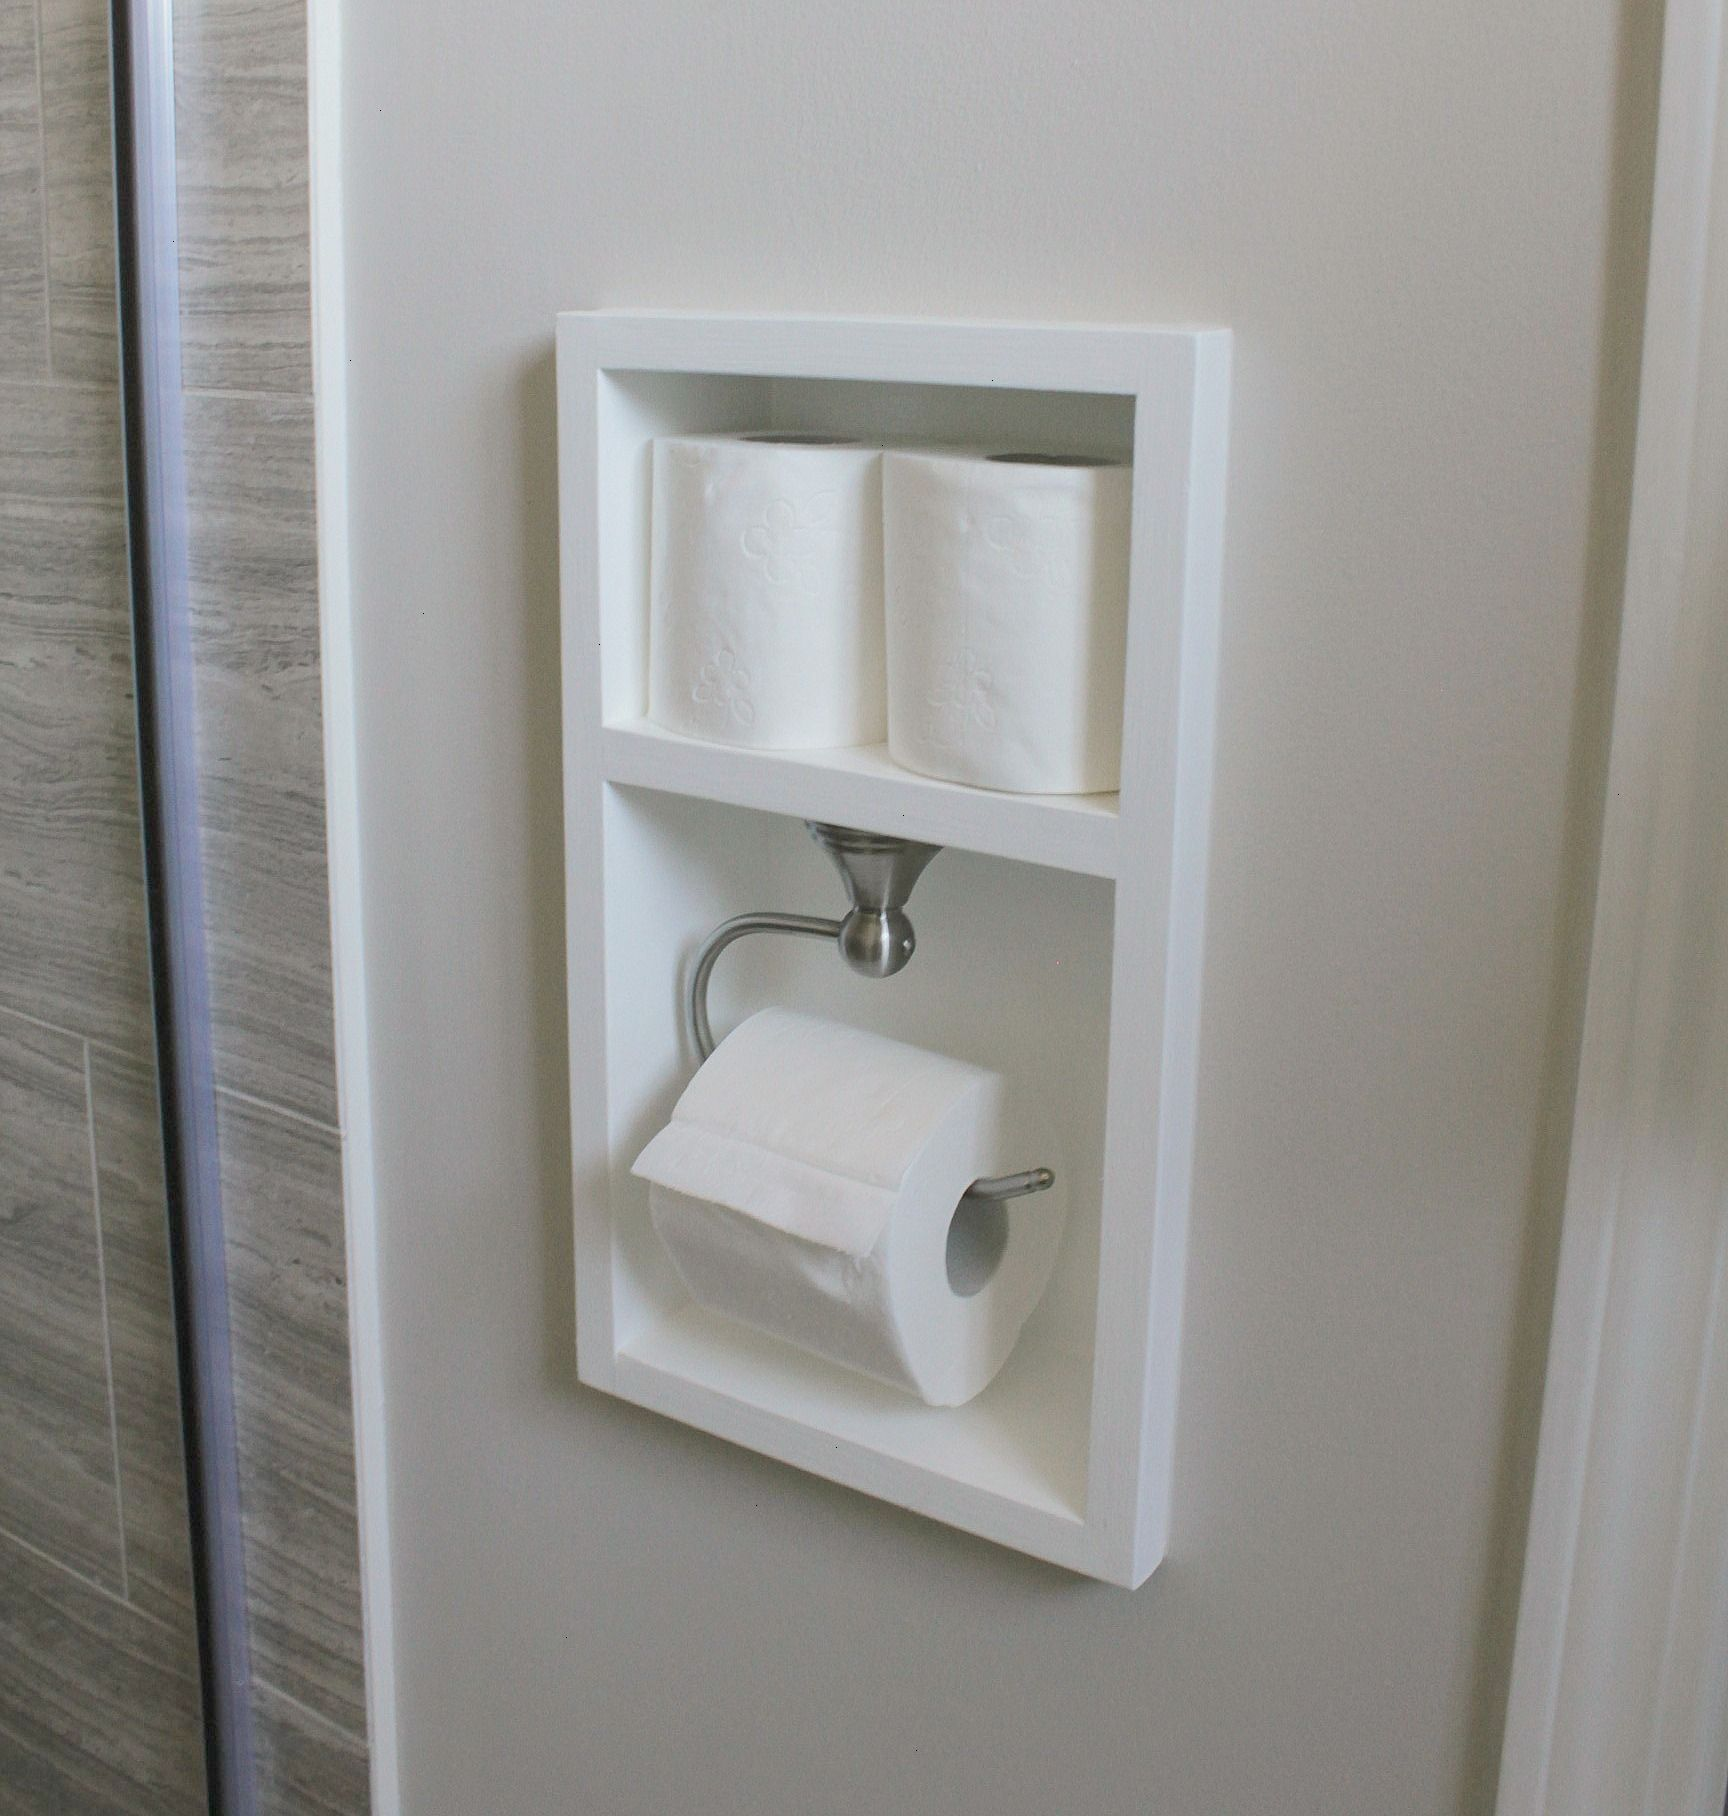 Simple Bathroom Solutions That Make A Statement #Bathroomstorage More